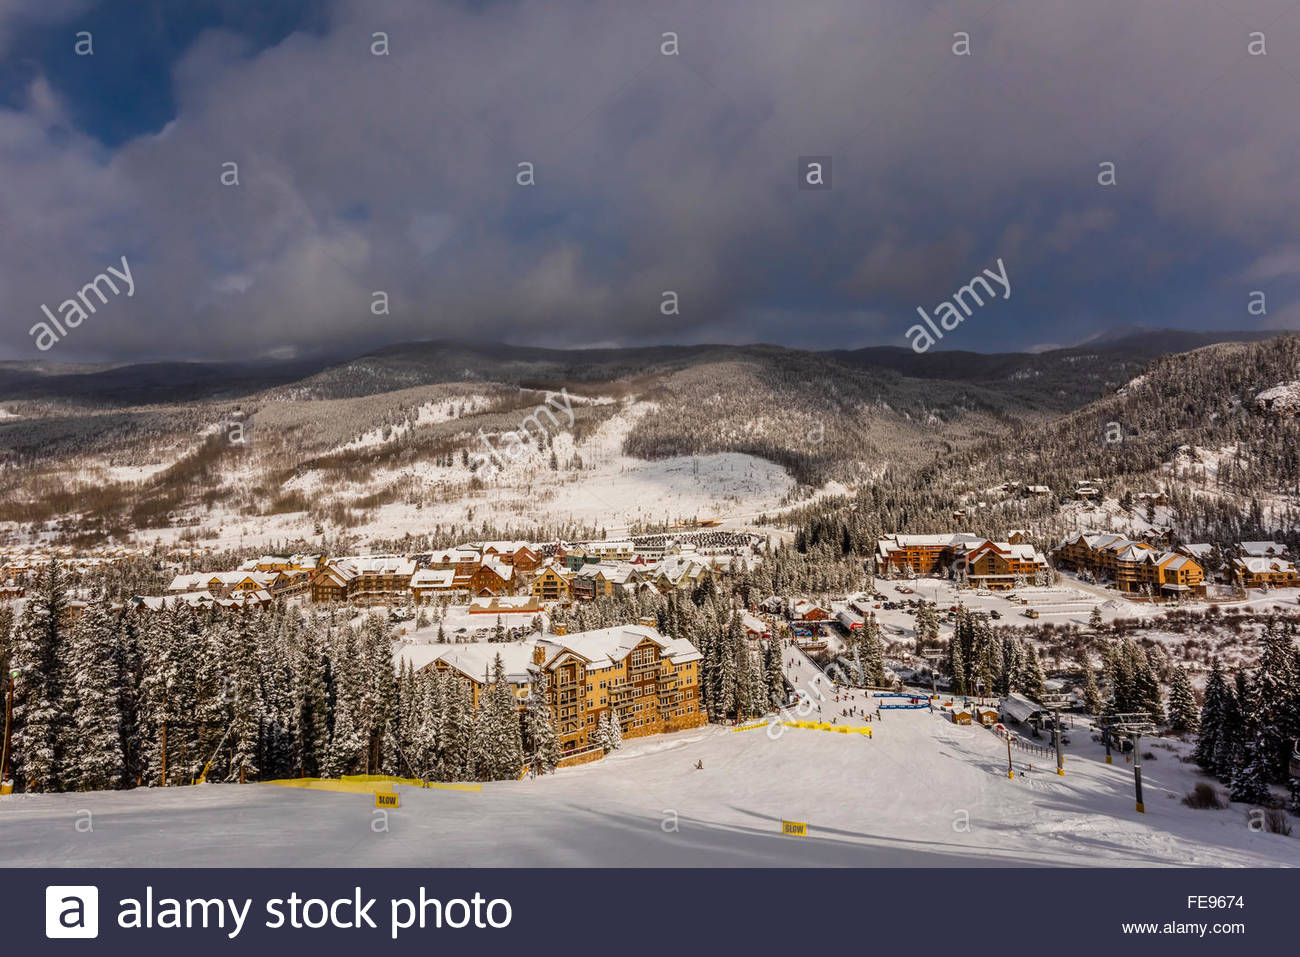 View down from ski slope to River Run Village, Keystone Resort, Colorado USA. - Stock Image